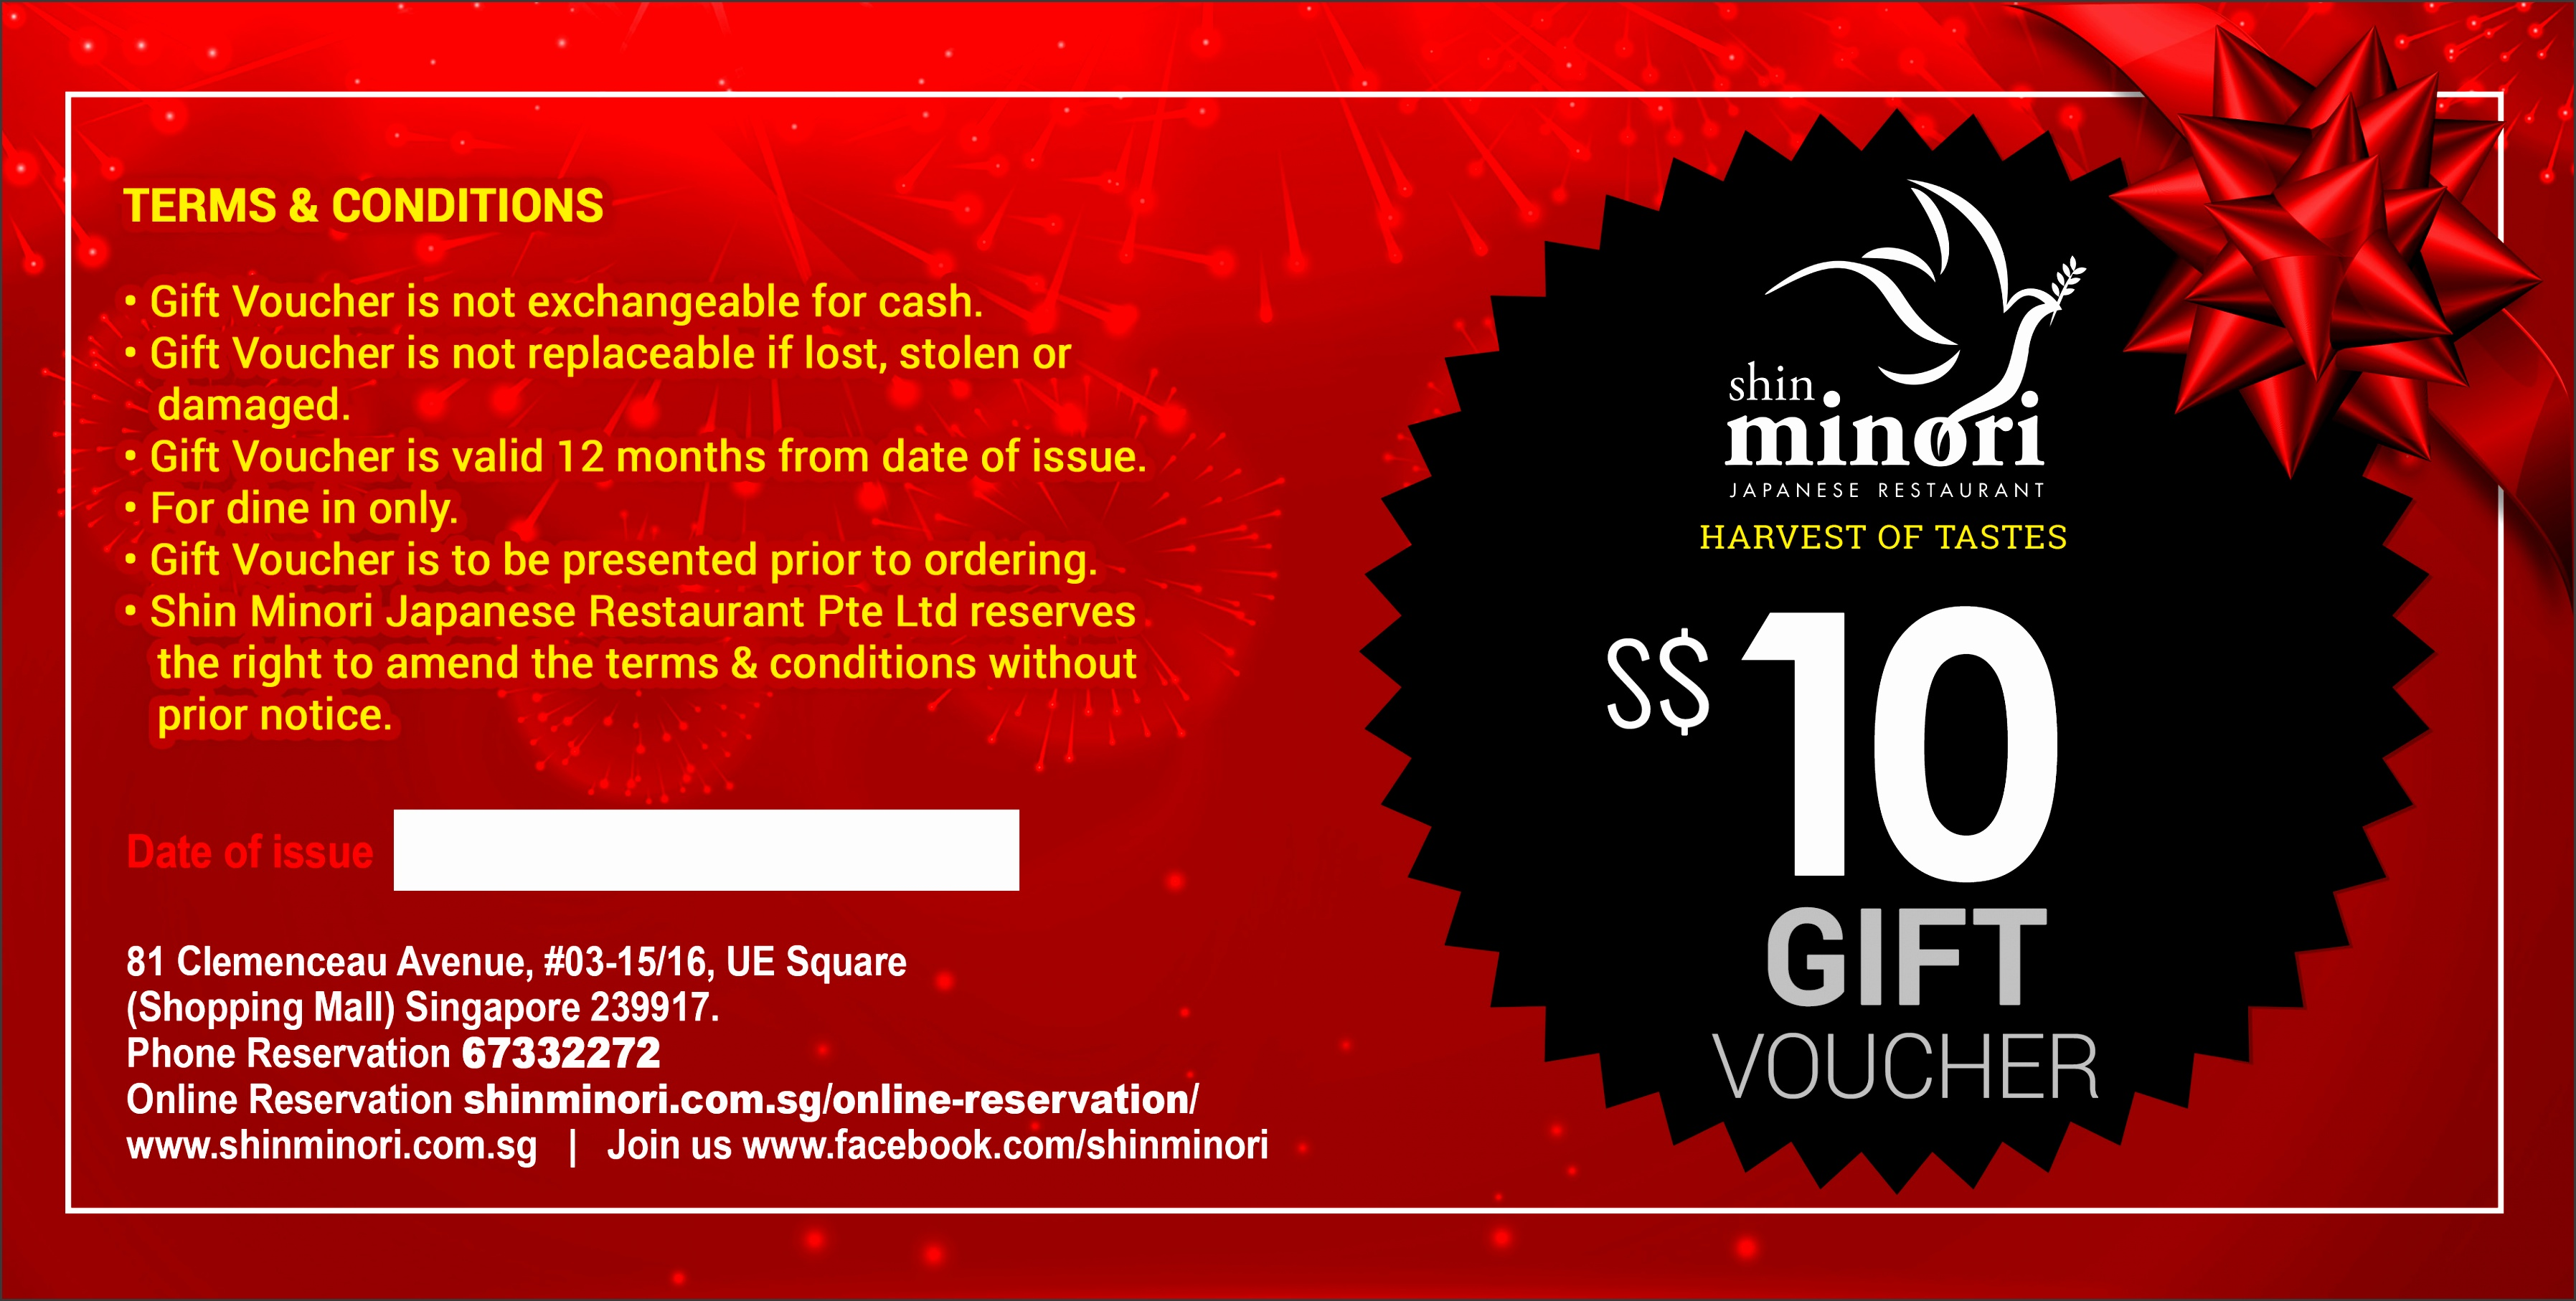 Adult Japanese Ala Carte Buffet Vouchers are Inclusive of Service Charge & GST